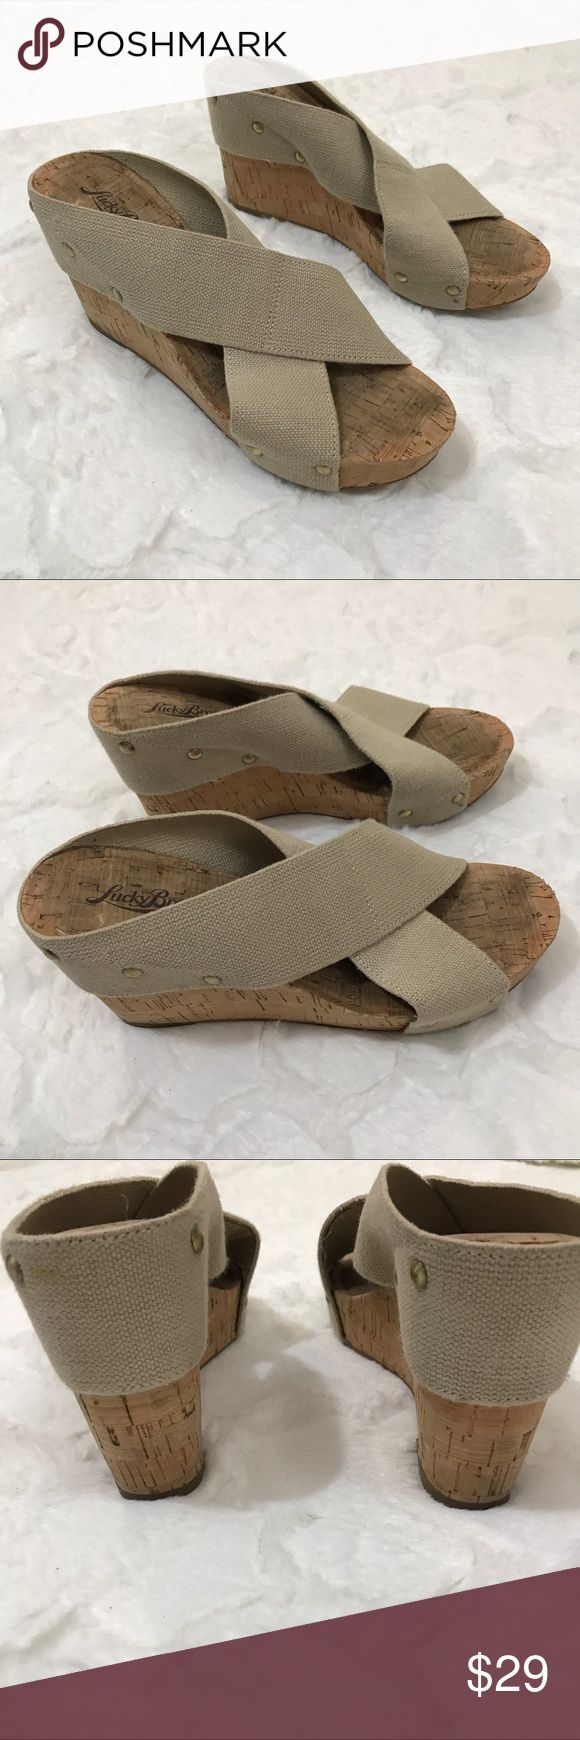 "Lucky brand wedge miller 2 canvas stretch cork This stylish cork sandal features a simple crossover vamp and a high wedge heel.  MILLER2-NAT Brand Color: Natural (Main Color: Beige) Material: Canvas Measurements: 4"" heel Width: B(M) Lucky Brand Shoes Wedges"